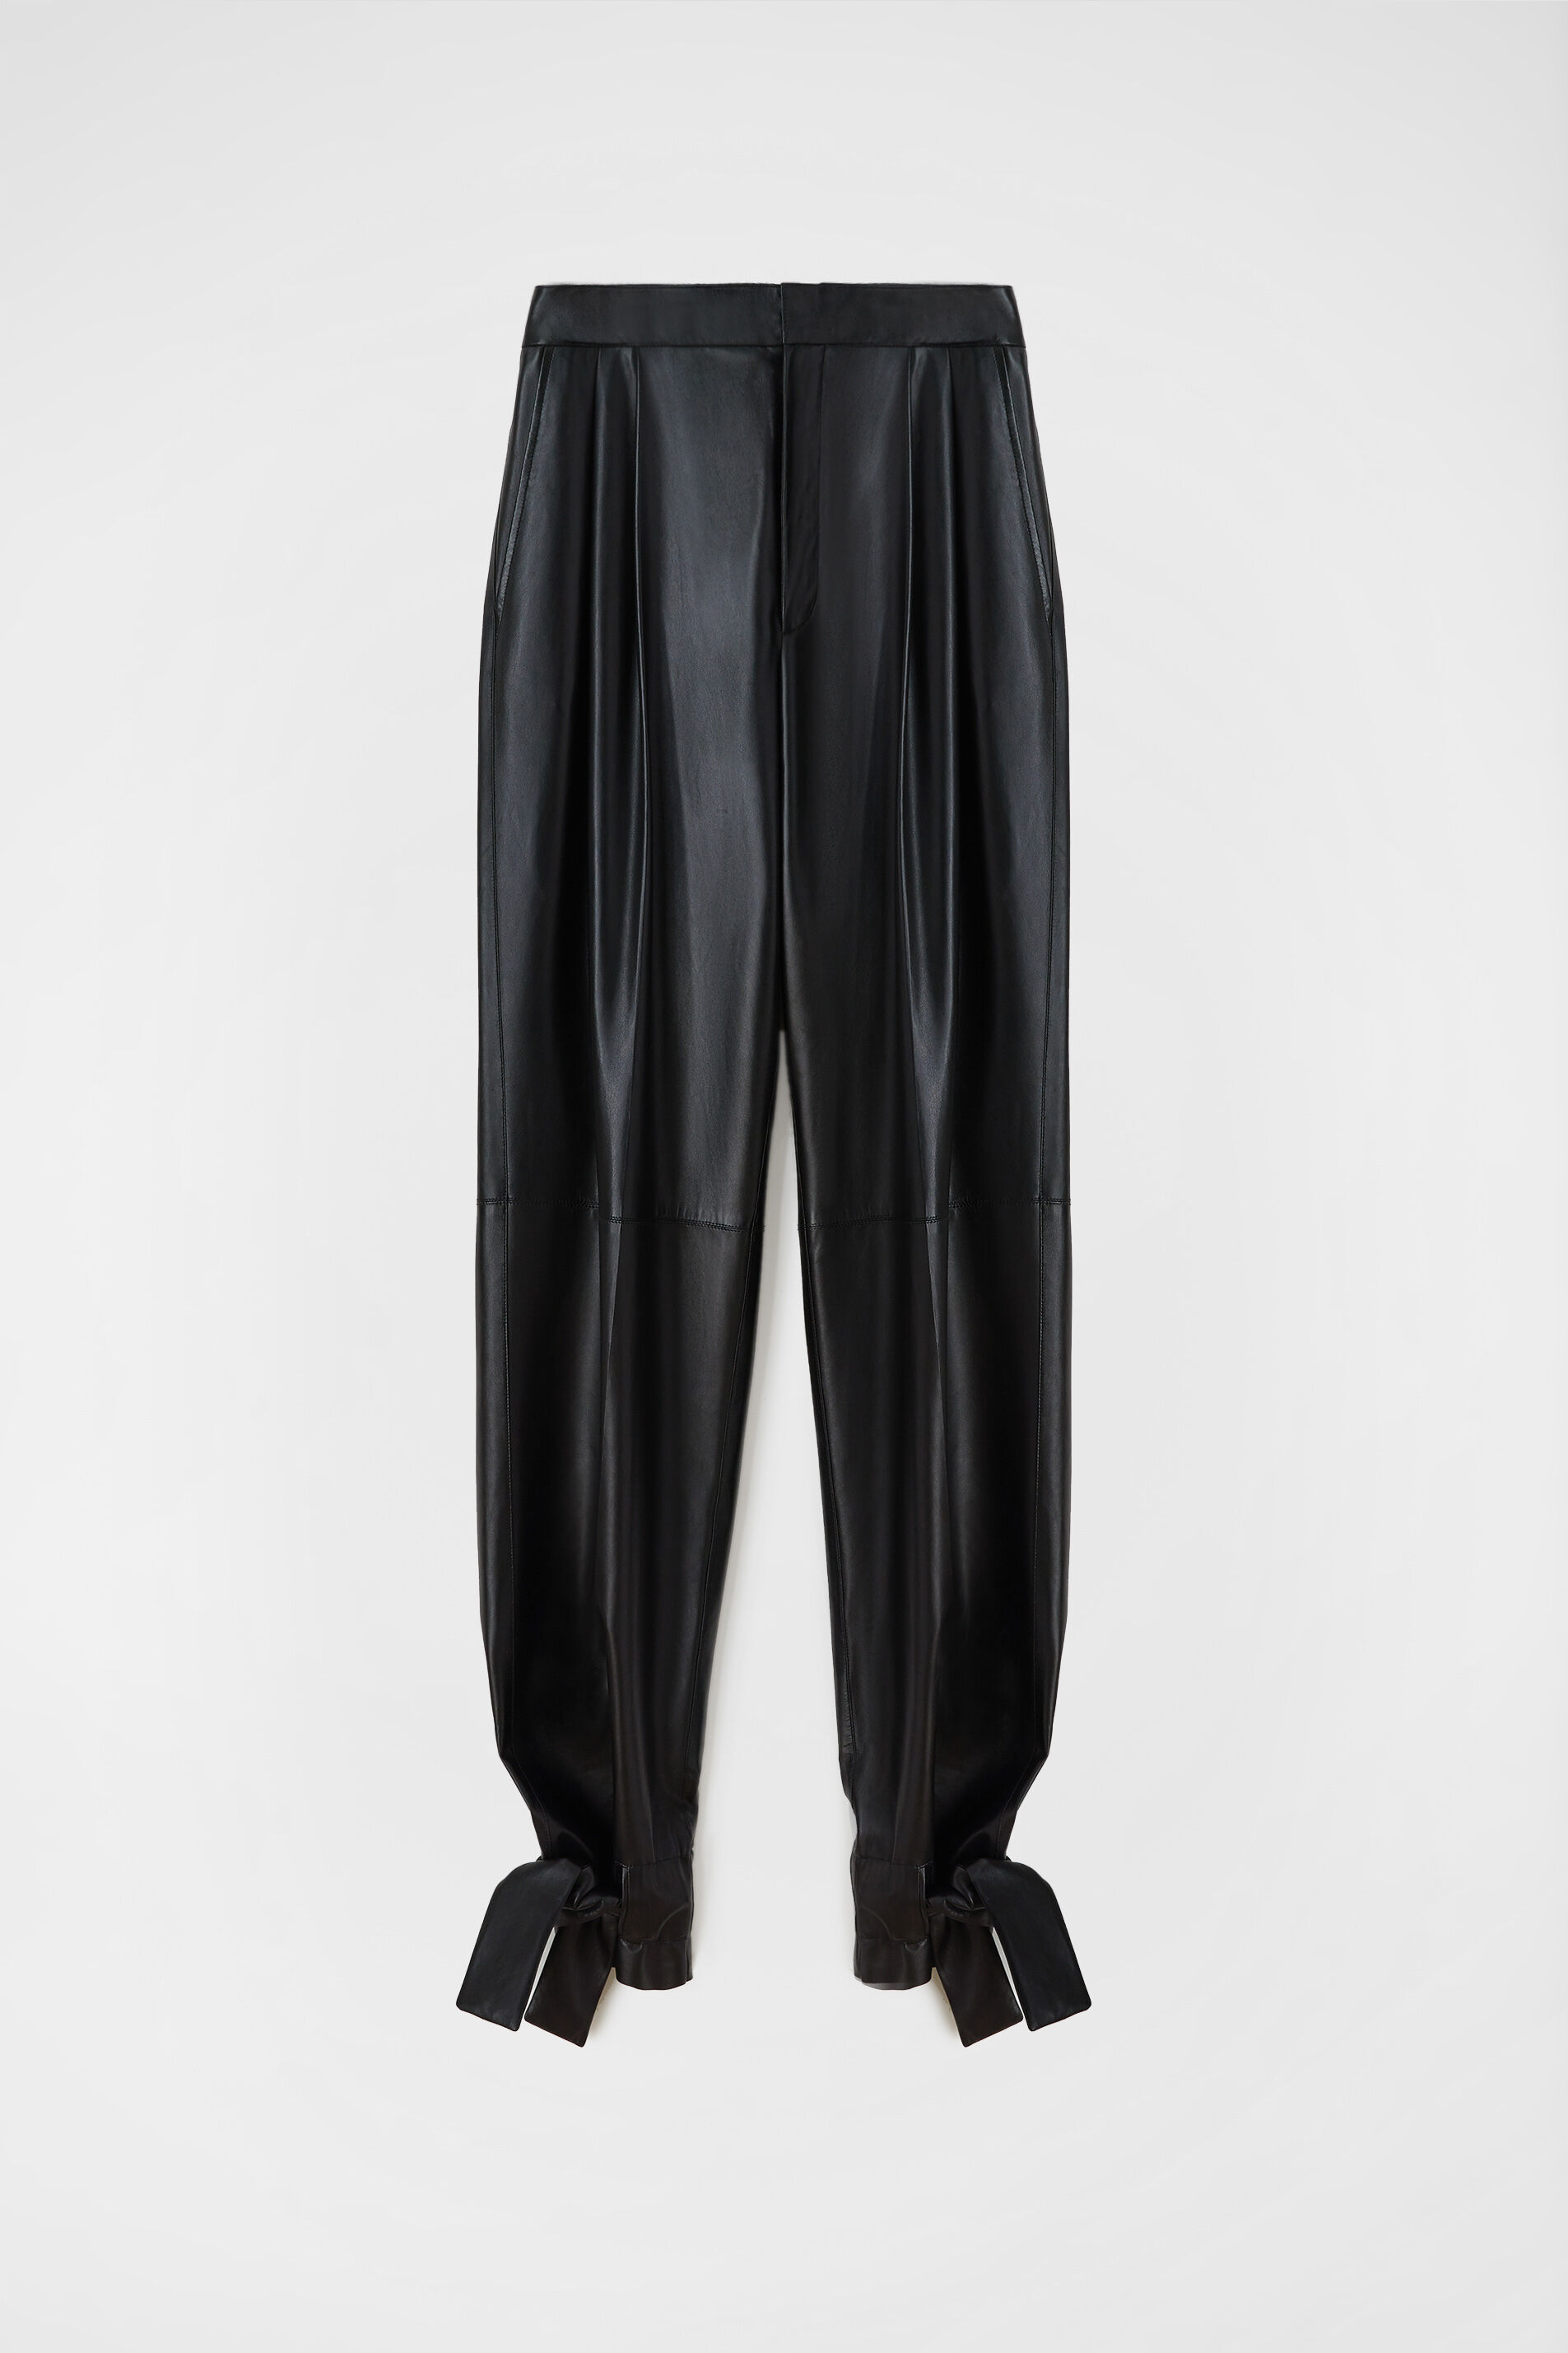 Leather Trousers, black, large